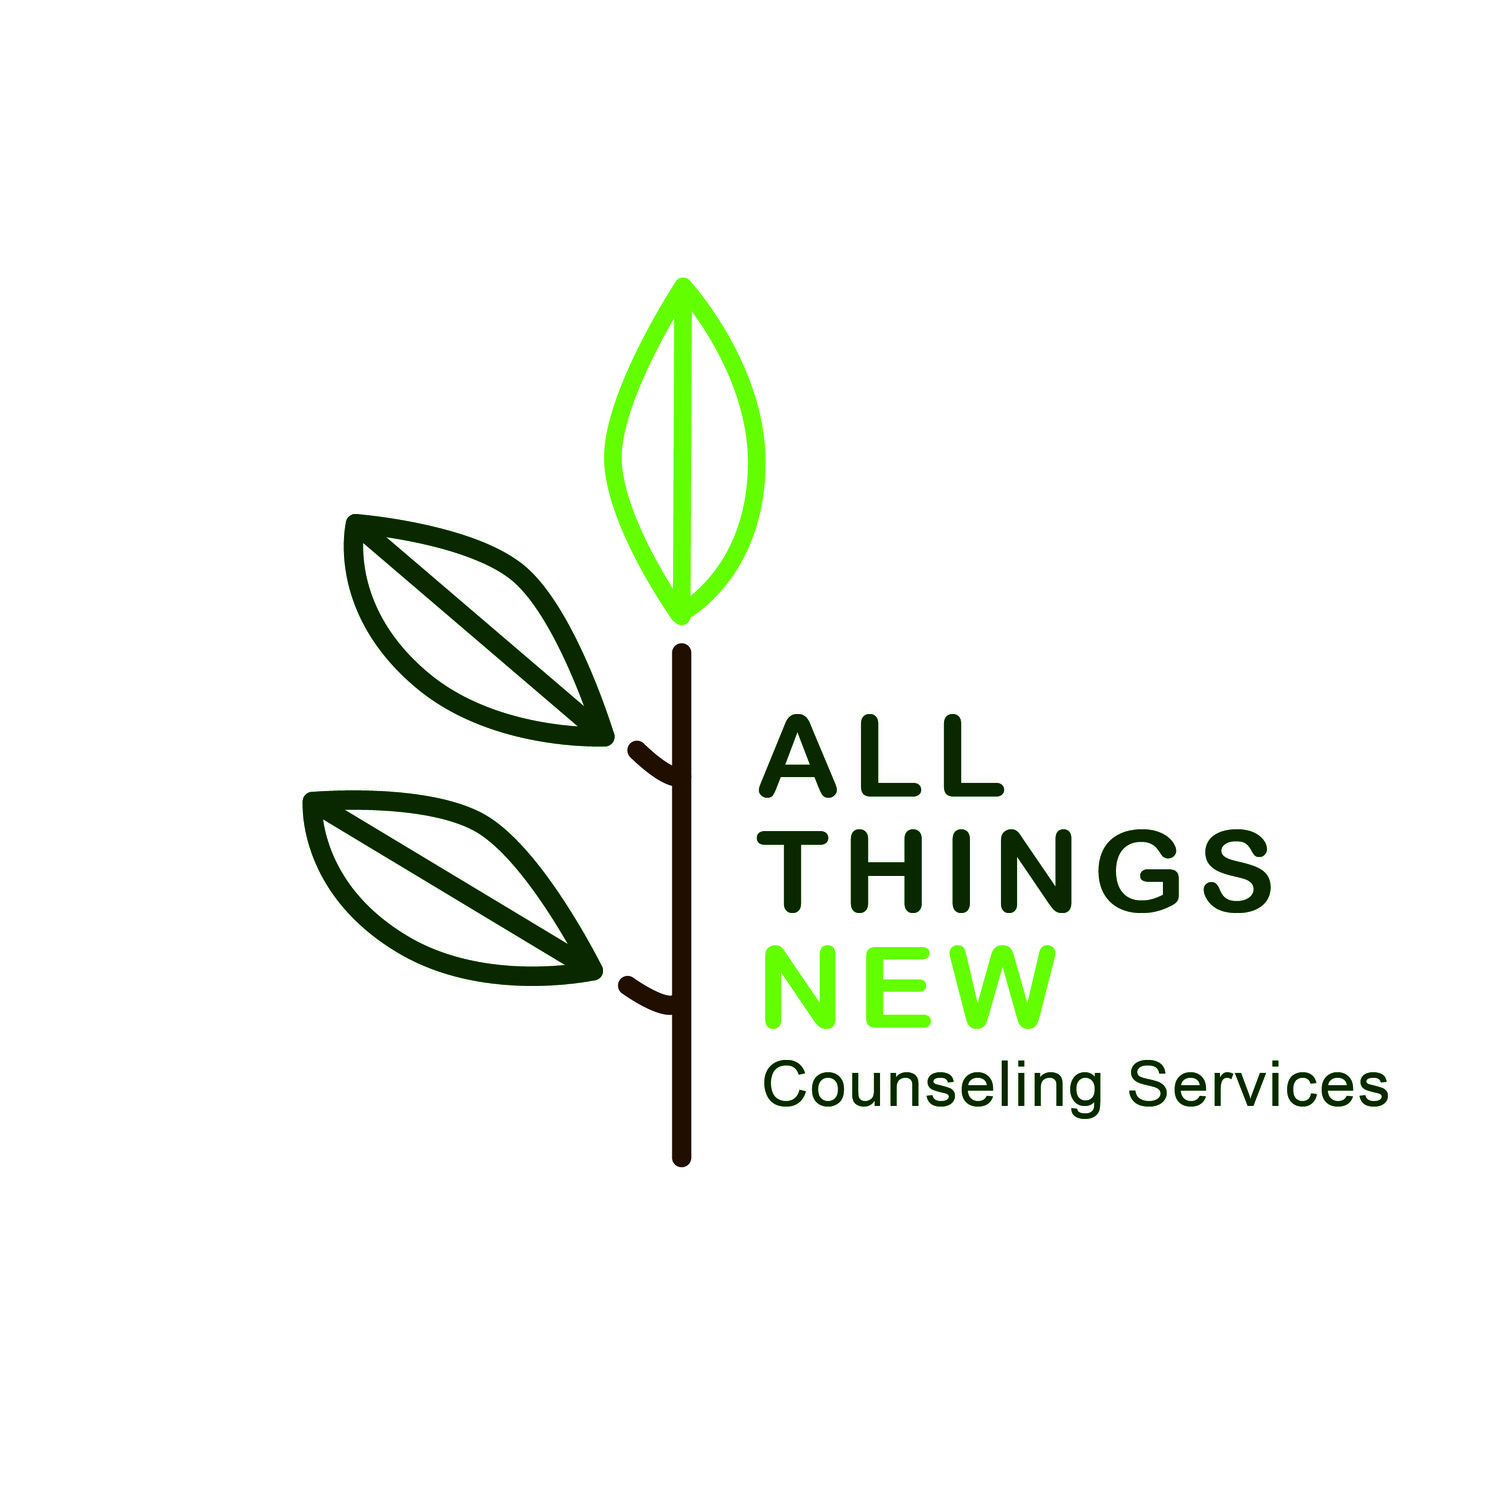 All Things New Counseling Services